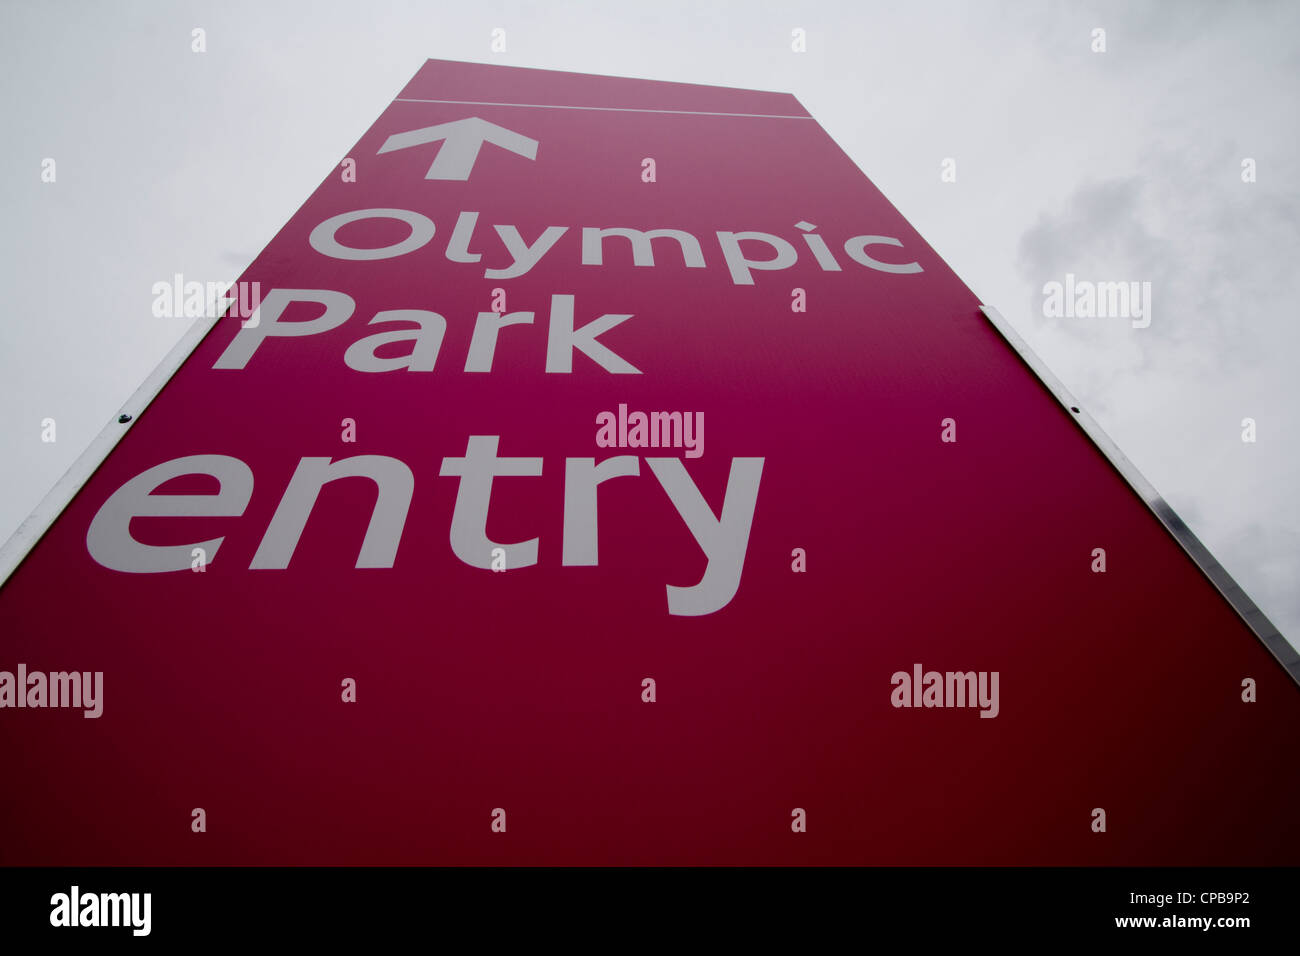 Olympic park entry sign stratford - Stock Image